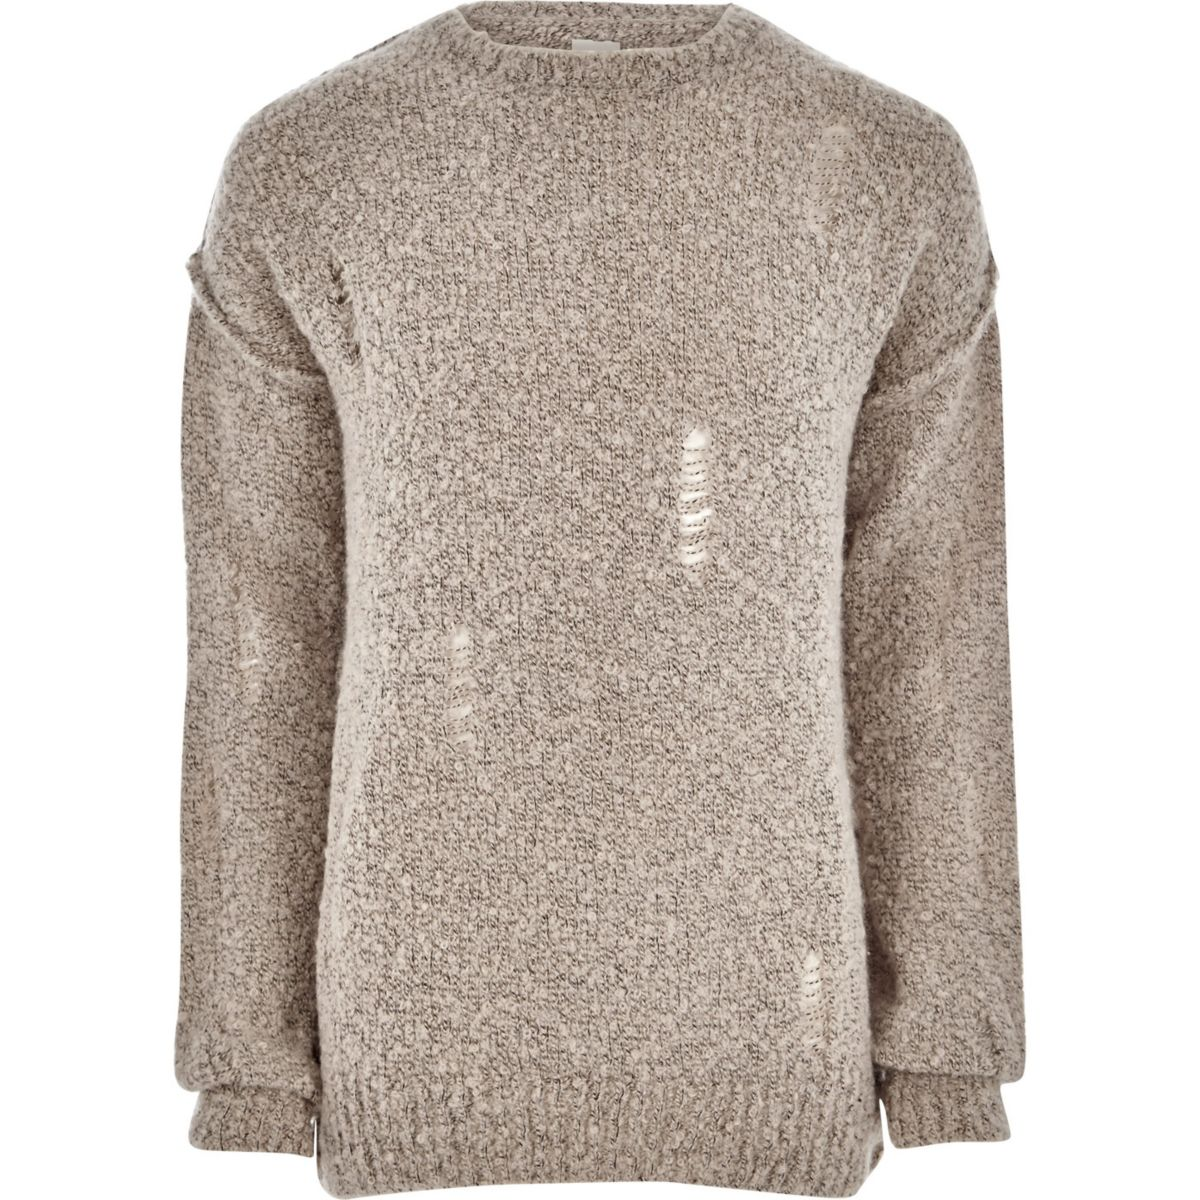 Stone boucle knit distressed sweater